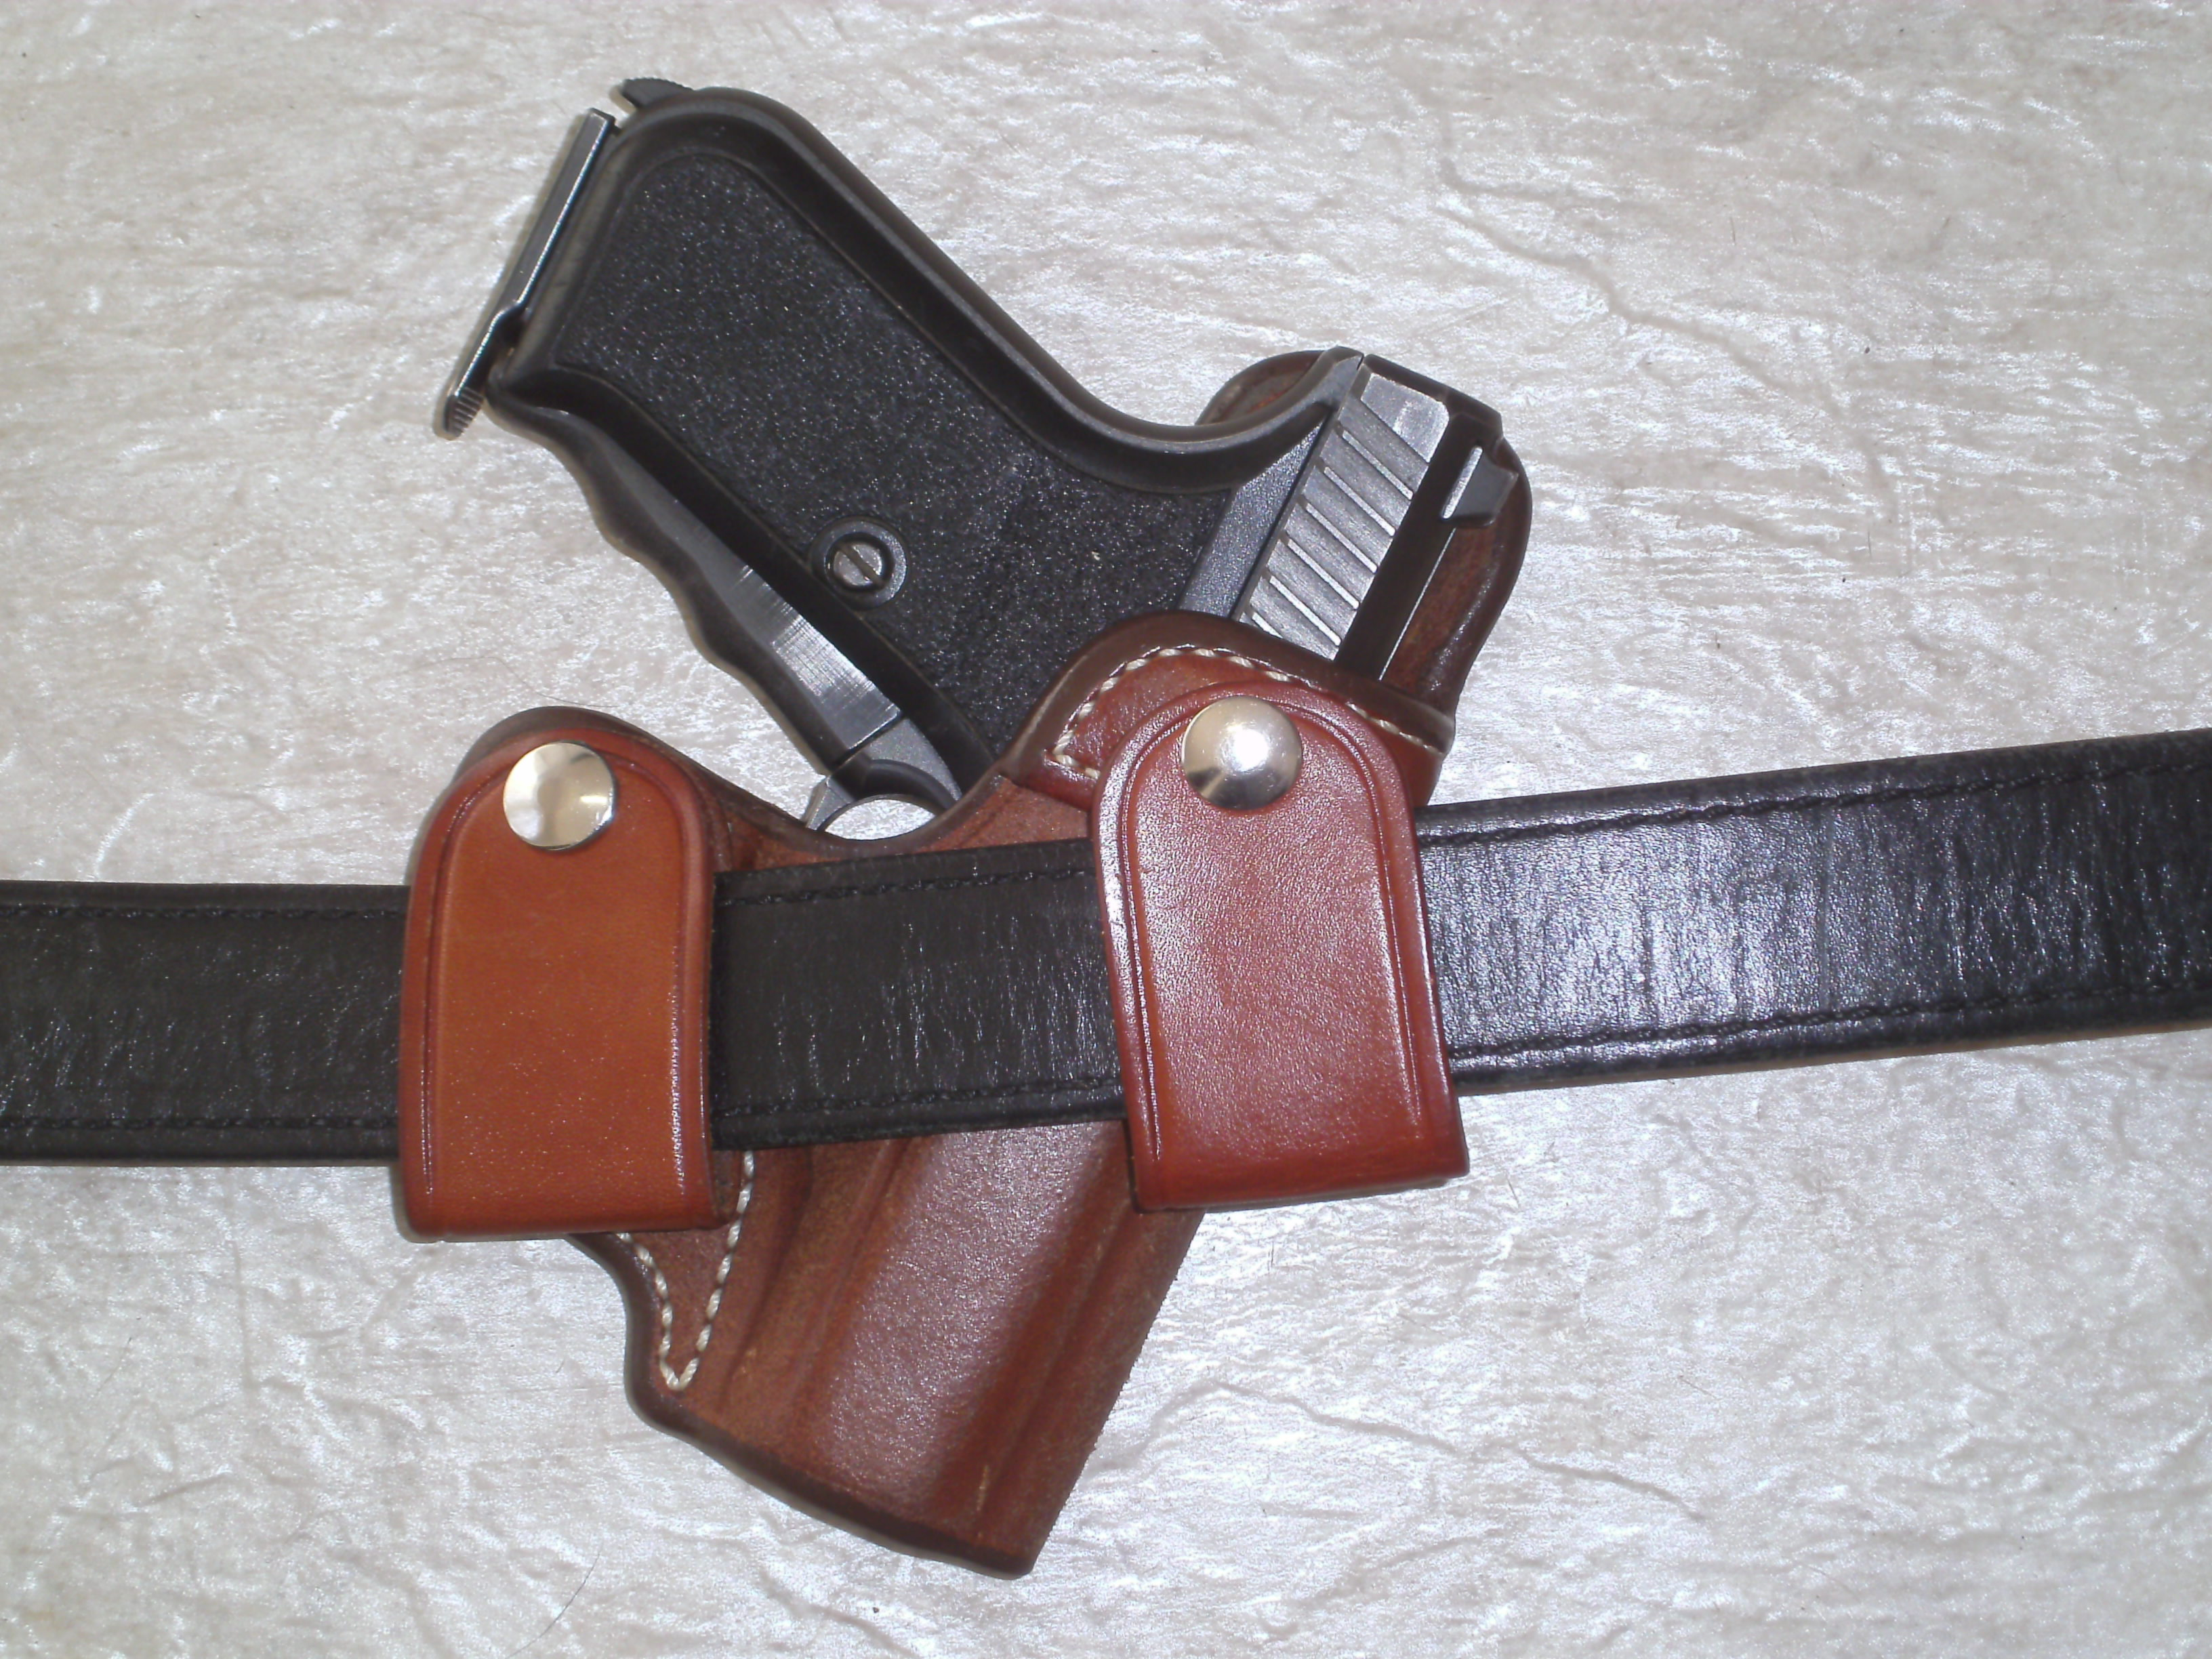 P7 PSP Gunleather for sale-sany1715.jpg